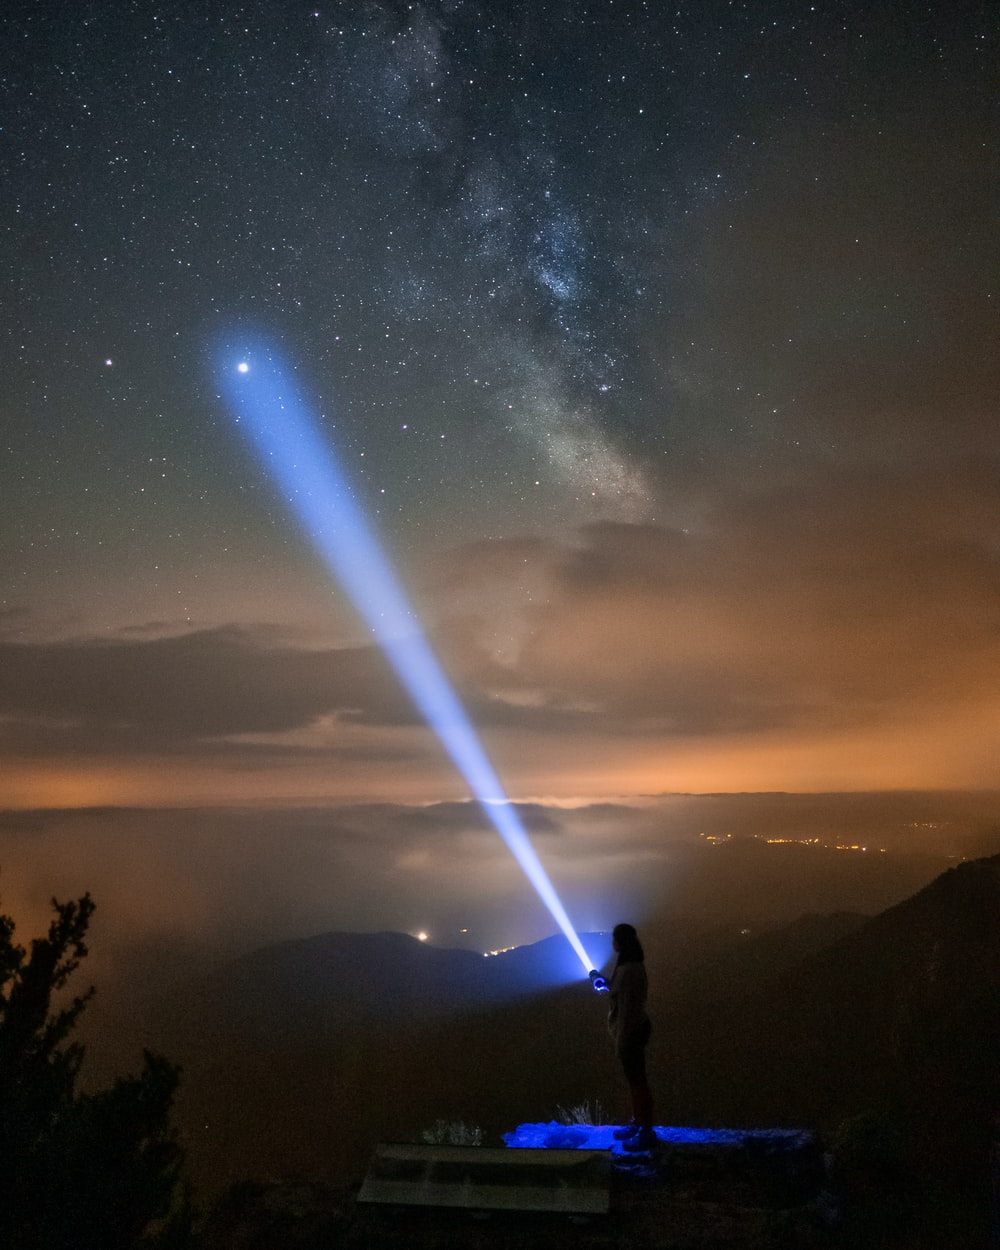 silhouette of man standing on mountain during night time